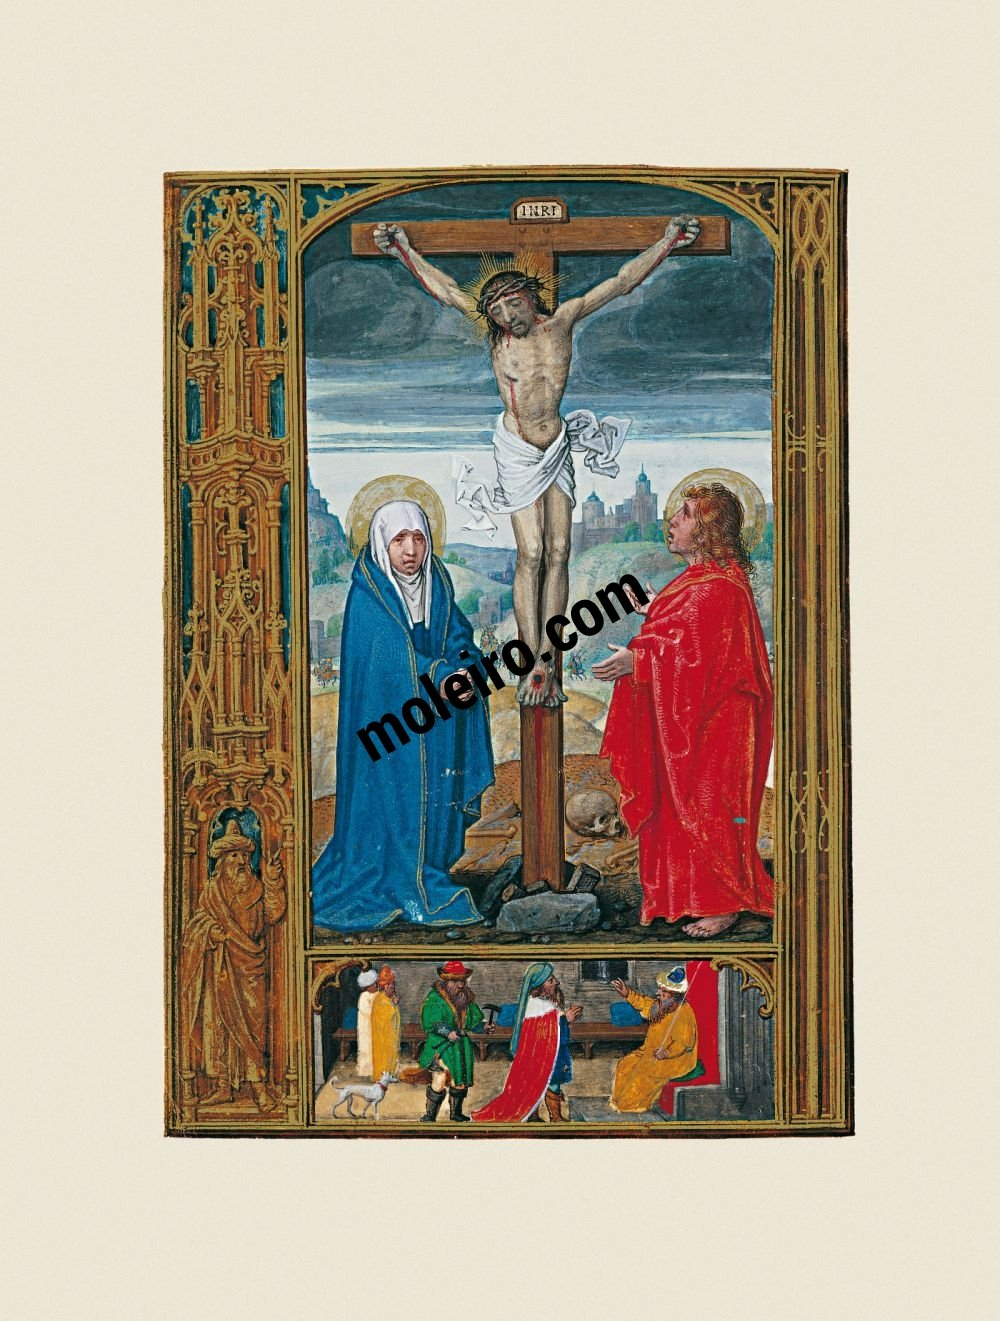 The Golf Book (Book of Hours) f. 12v, Crucifxion